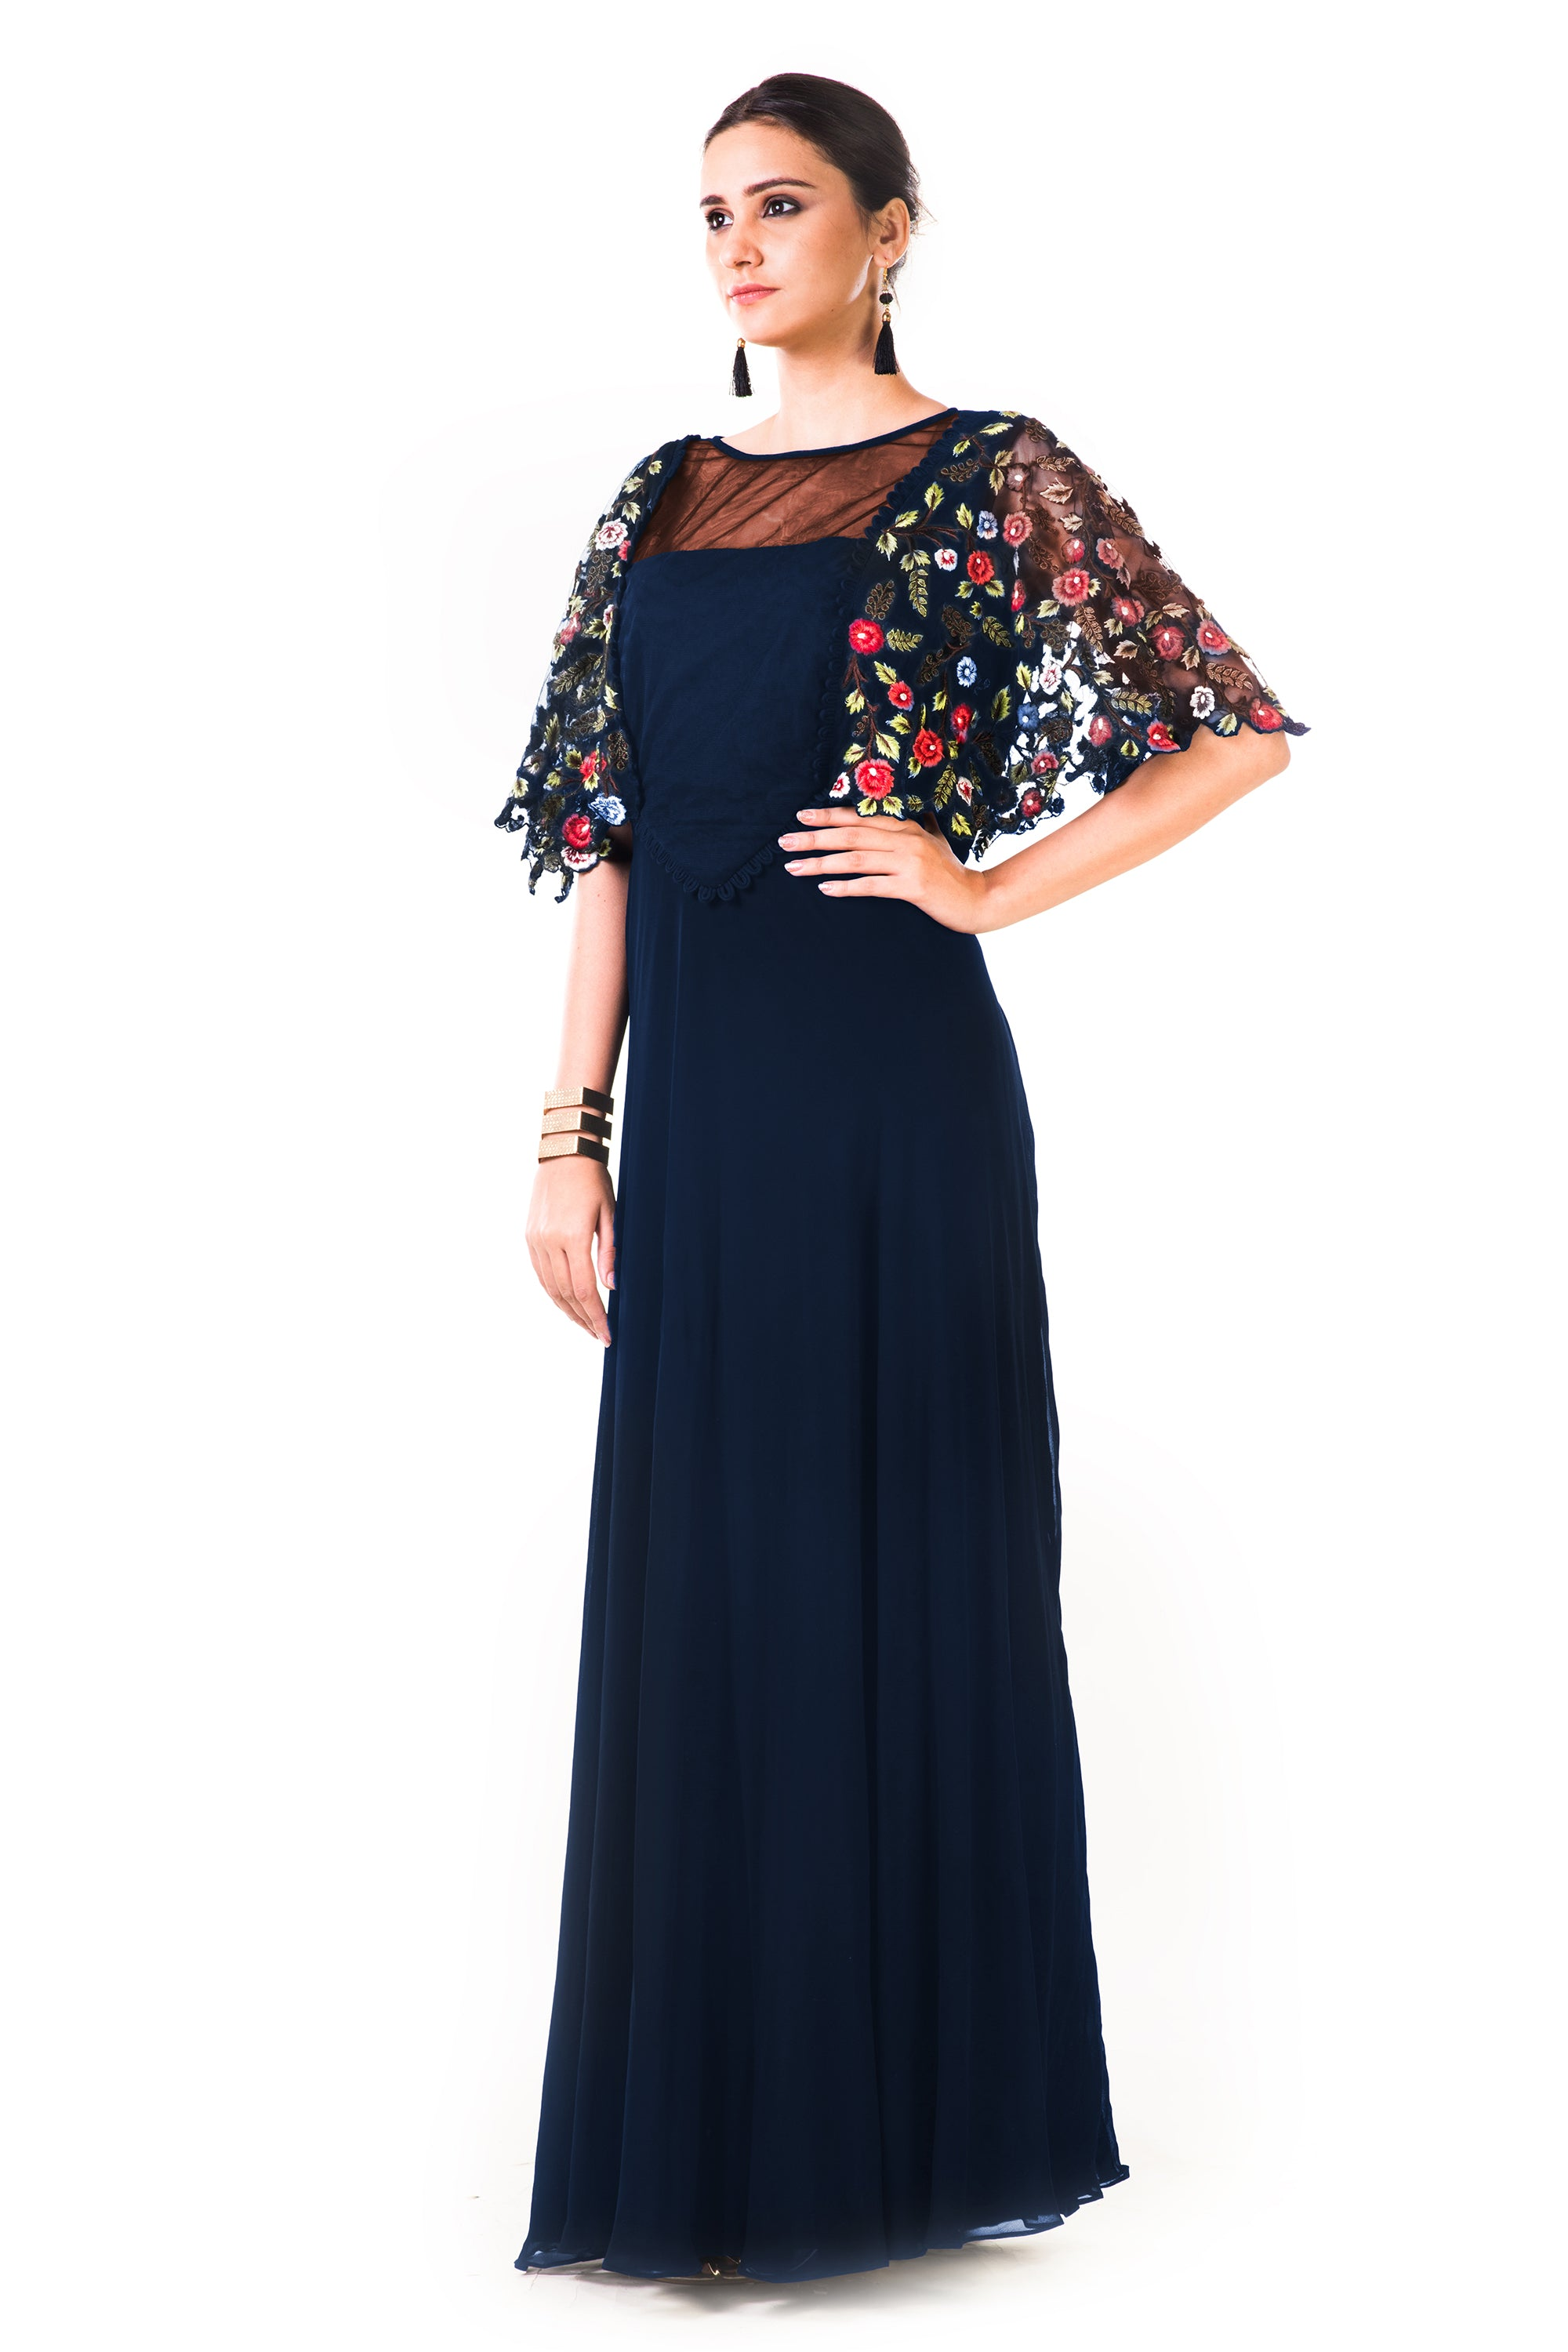 Midnight Blue Hand Embroidered Cape Style Gown Side